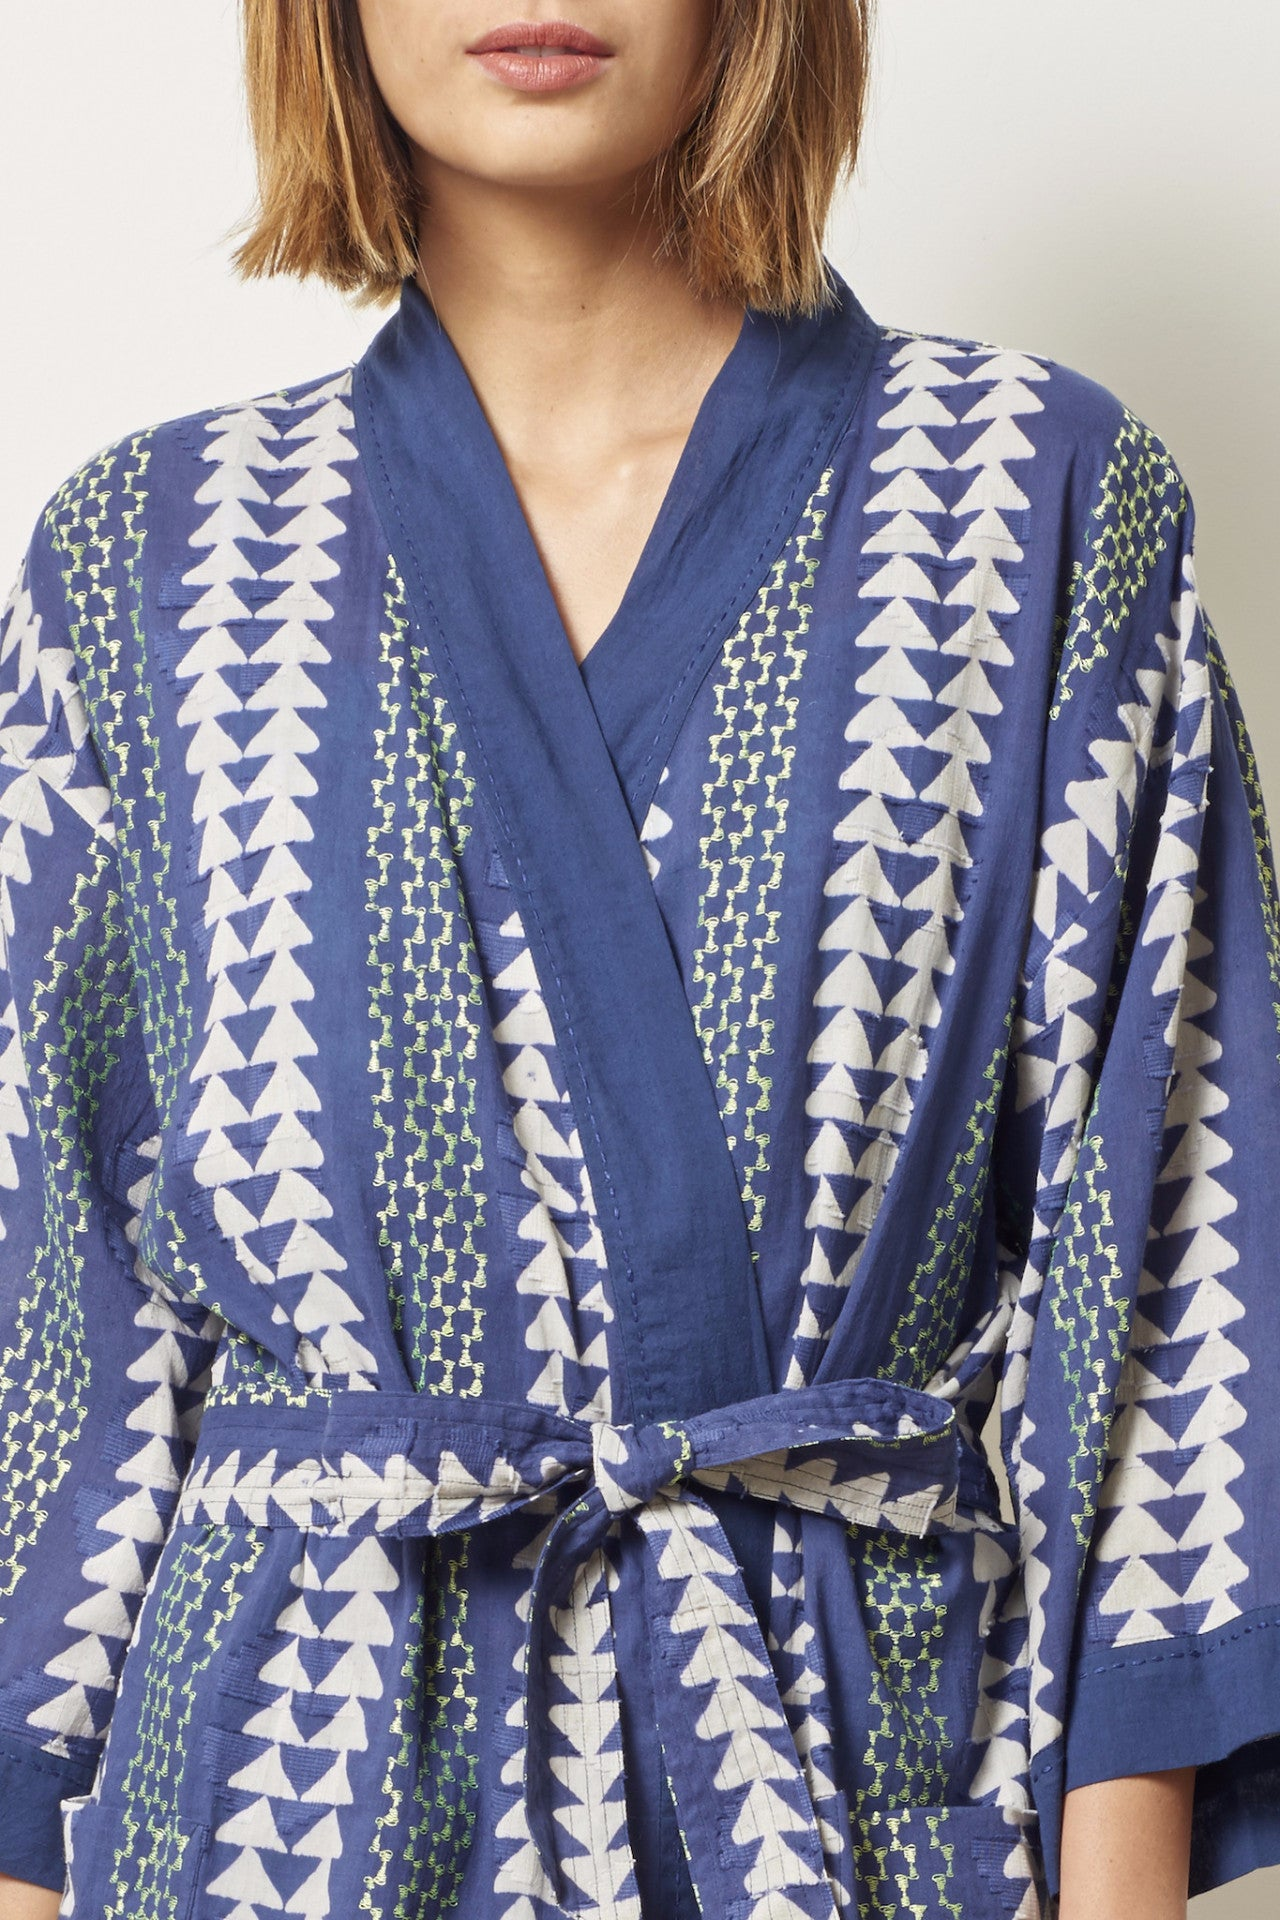 TORY Cotton robe in Block Printed triangle